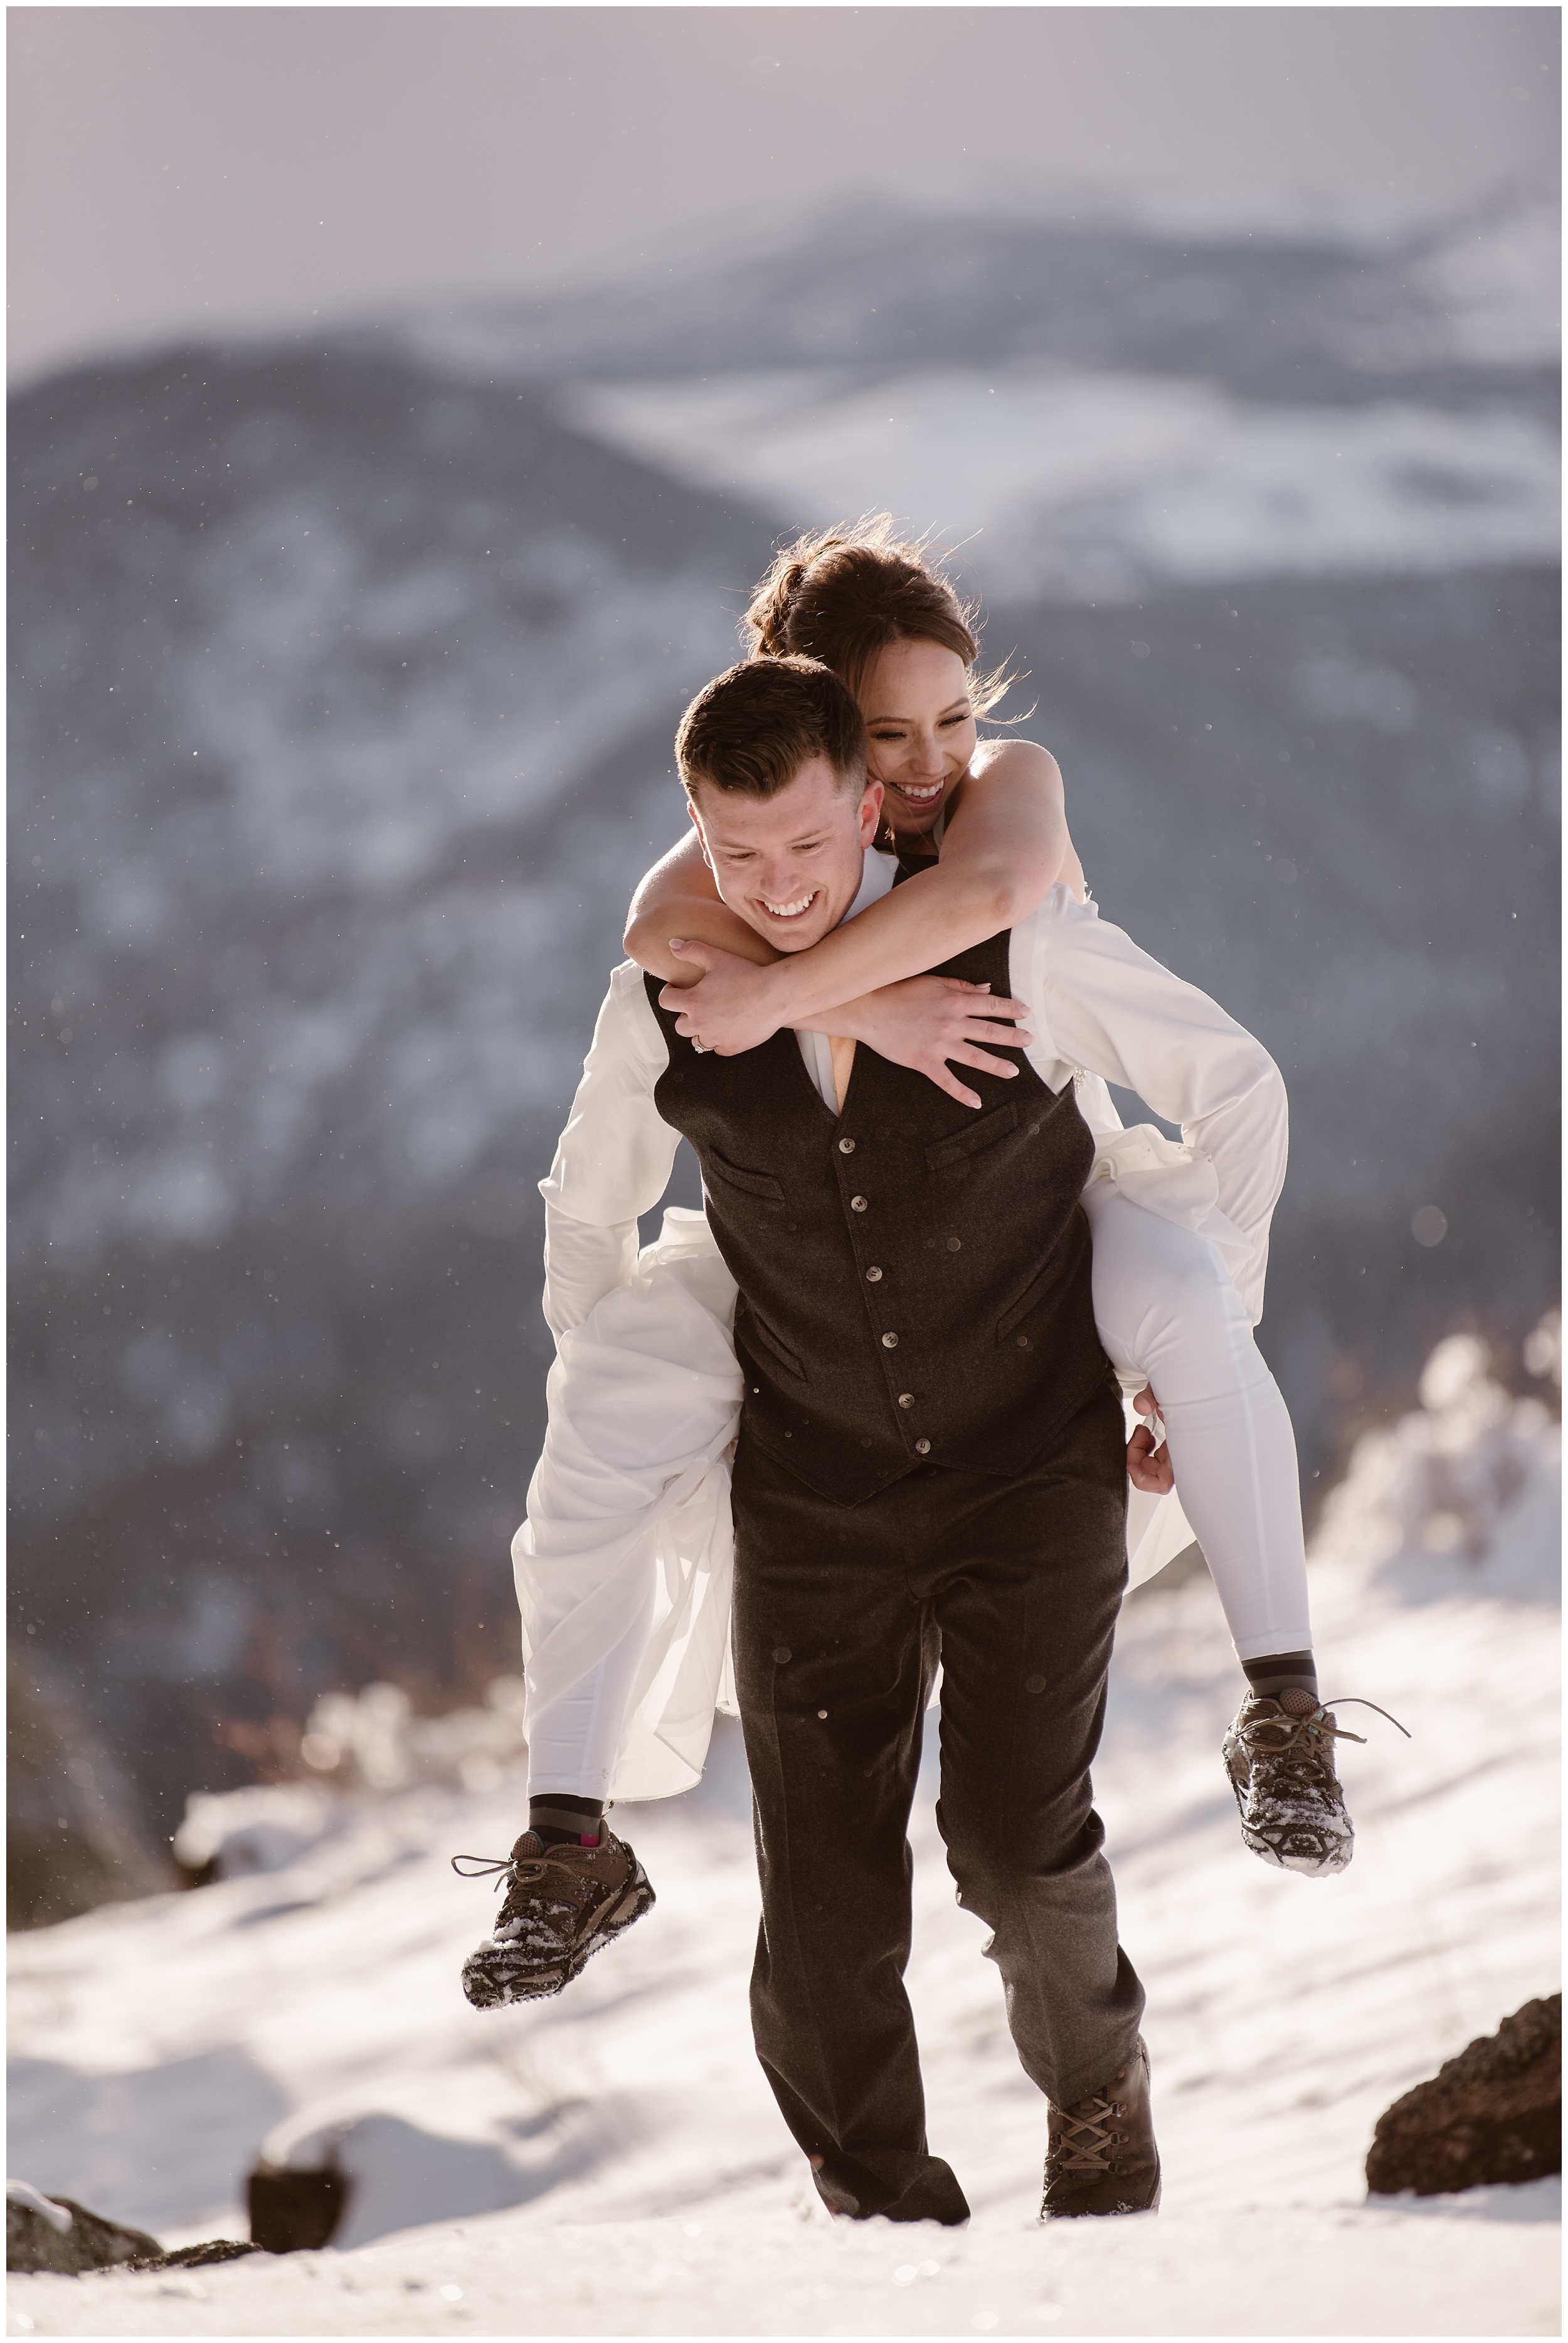 A bride rides piggyback on her groom as they hike through the snow during their Colorado mountain wedding ceremony. These adventure elopement pictures were captured by Adventure Instead, an elopement photographer.